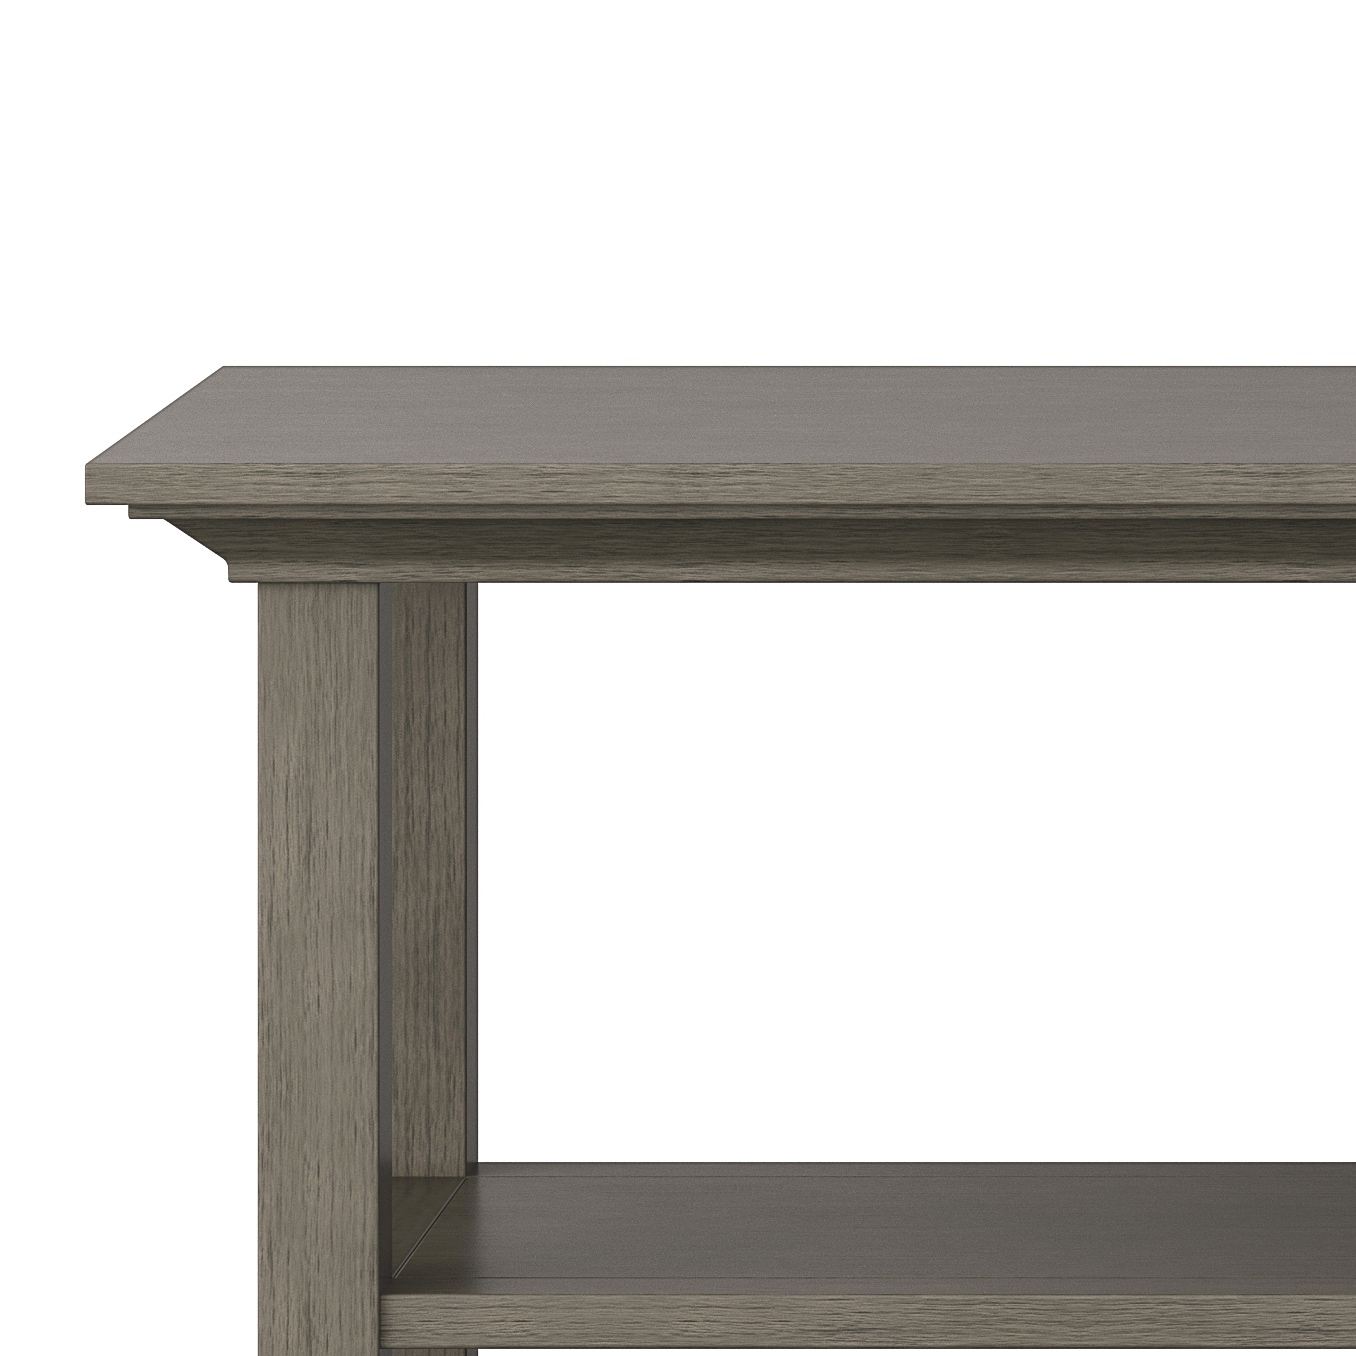 Wyndenhall Mansfield Solid Wood 54 Inch Wide Rustic Console Sofa Table 54 W X 16 D X 30 H Overstock 13917186